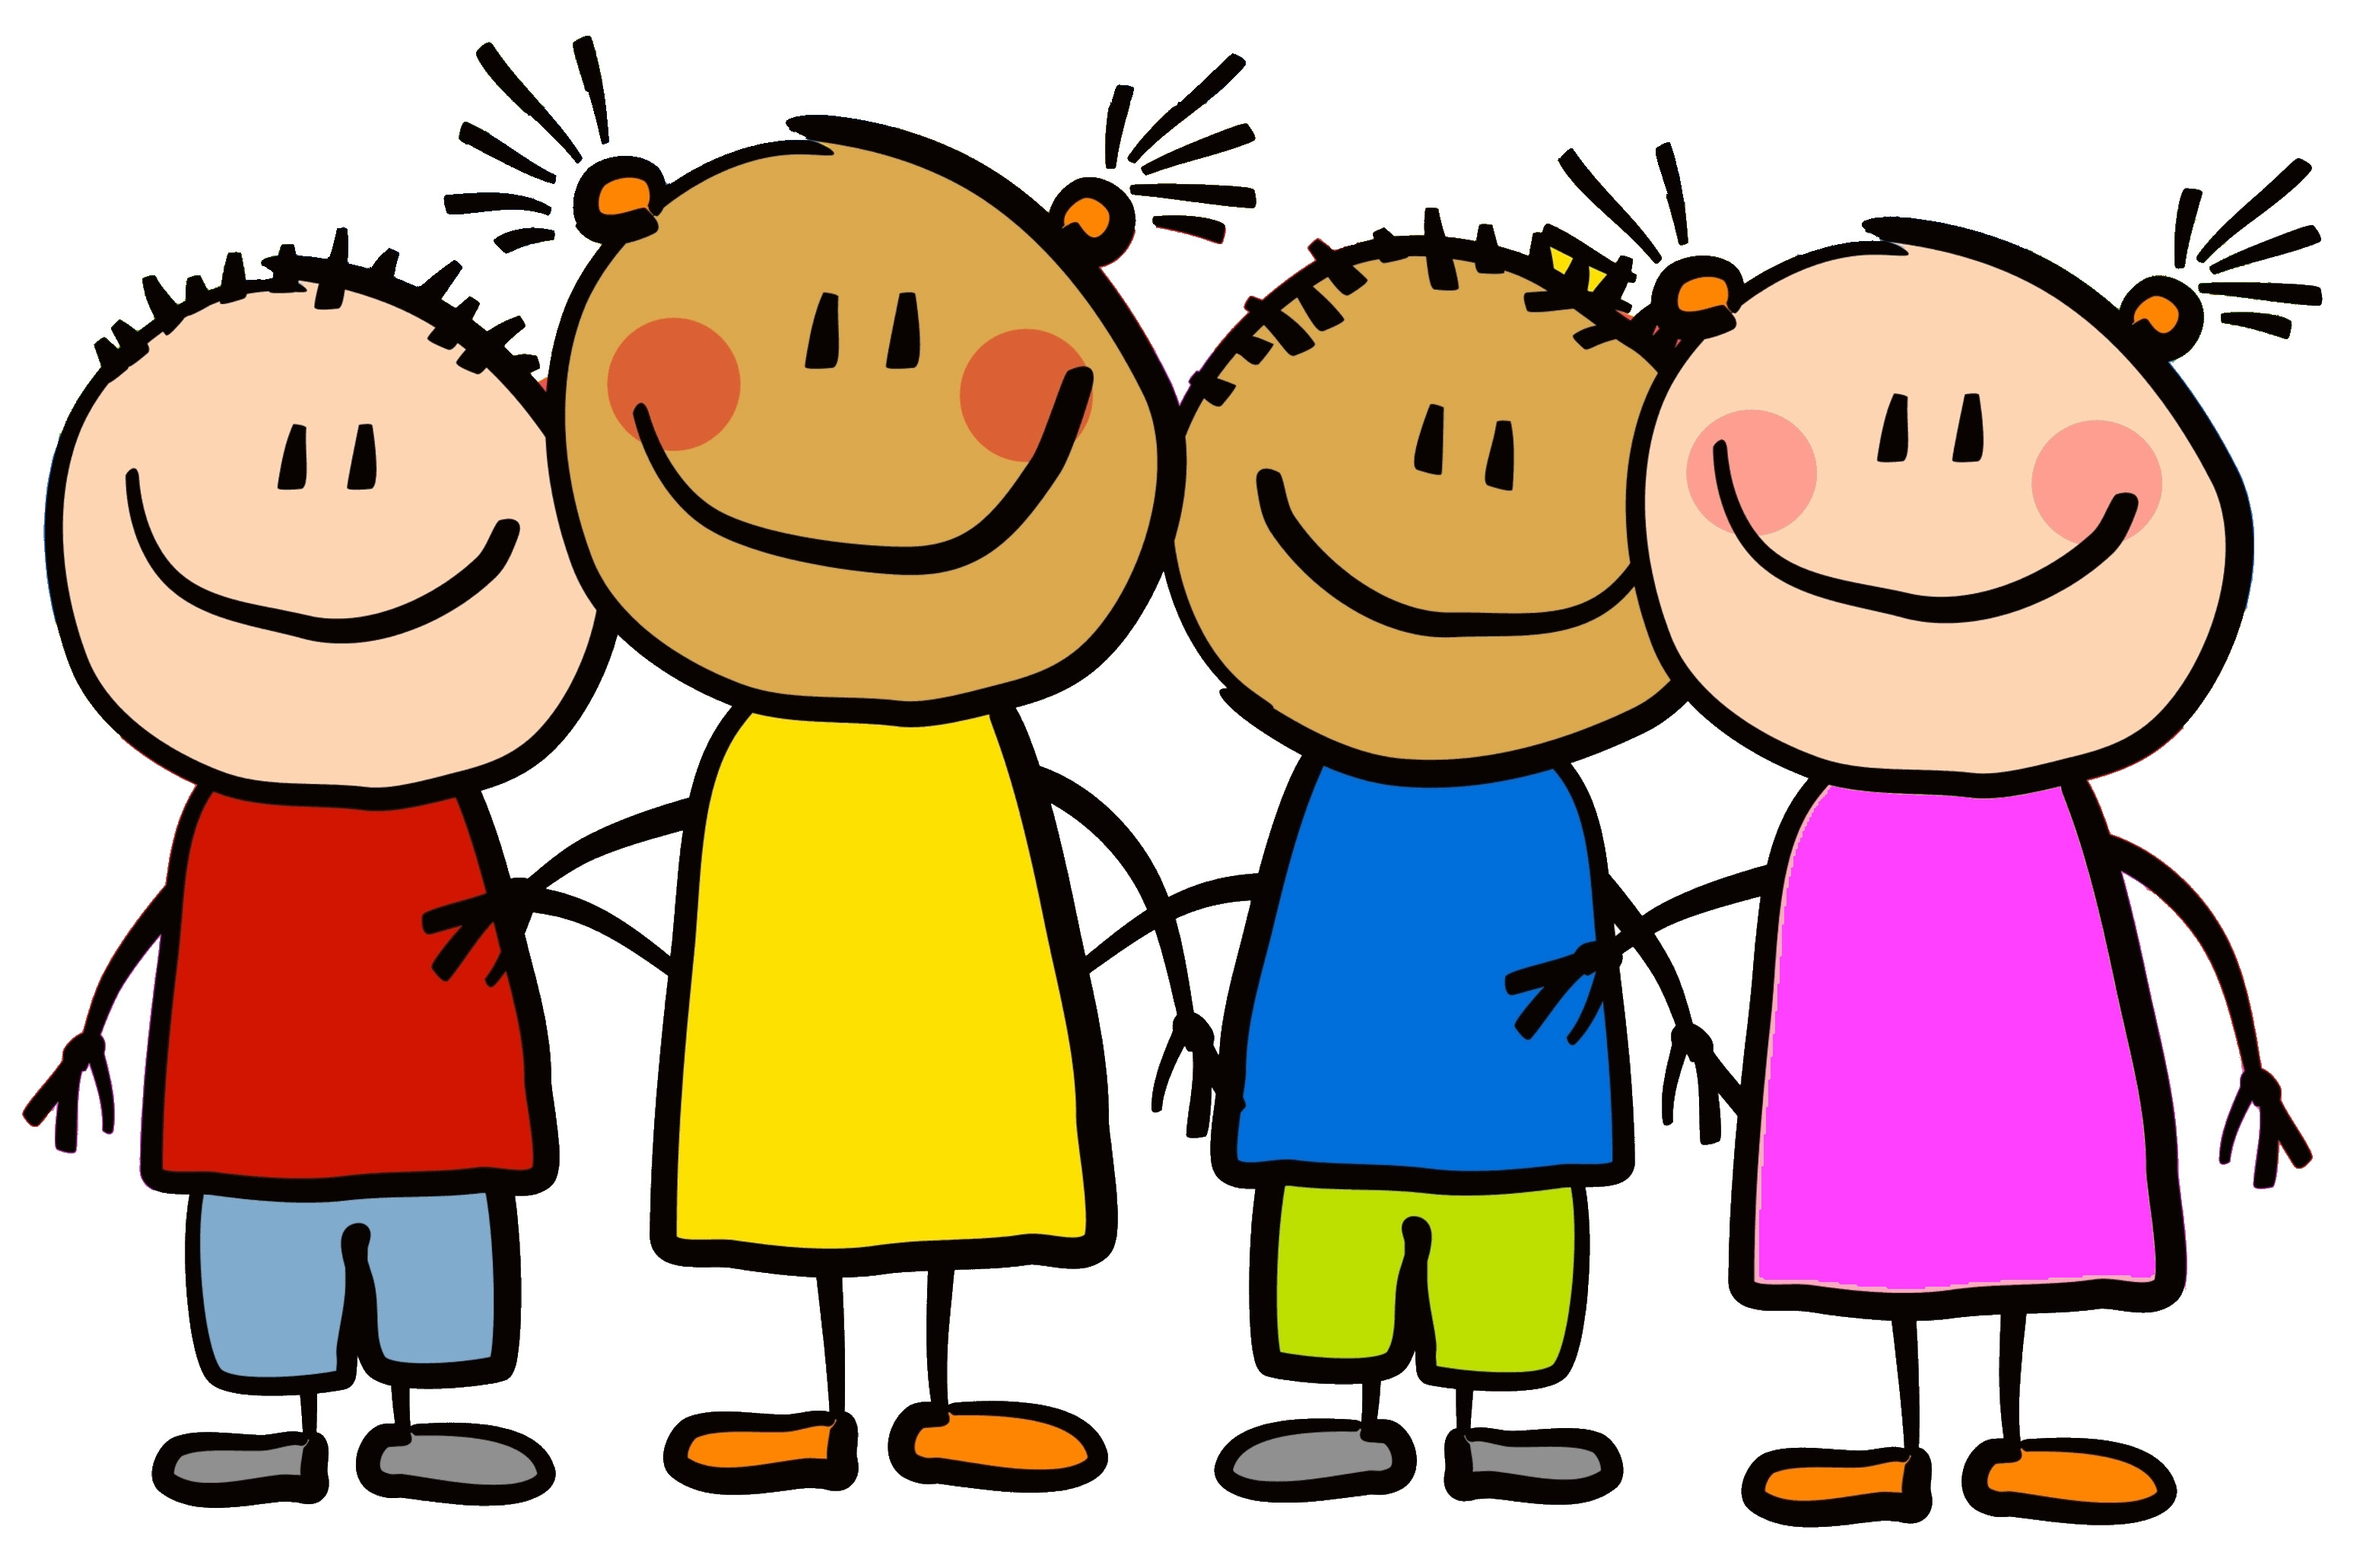 happy kids clipart at getdrawings com free for personal use happy rh getdrawings com